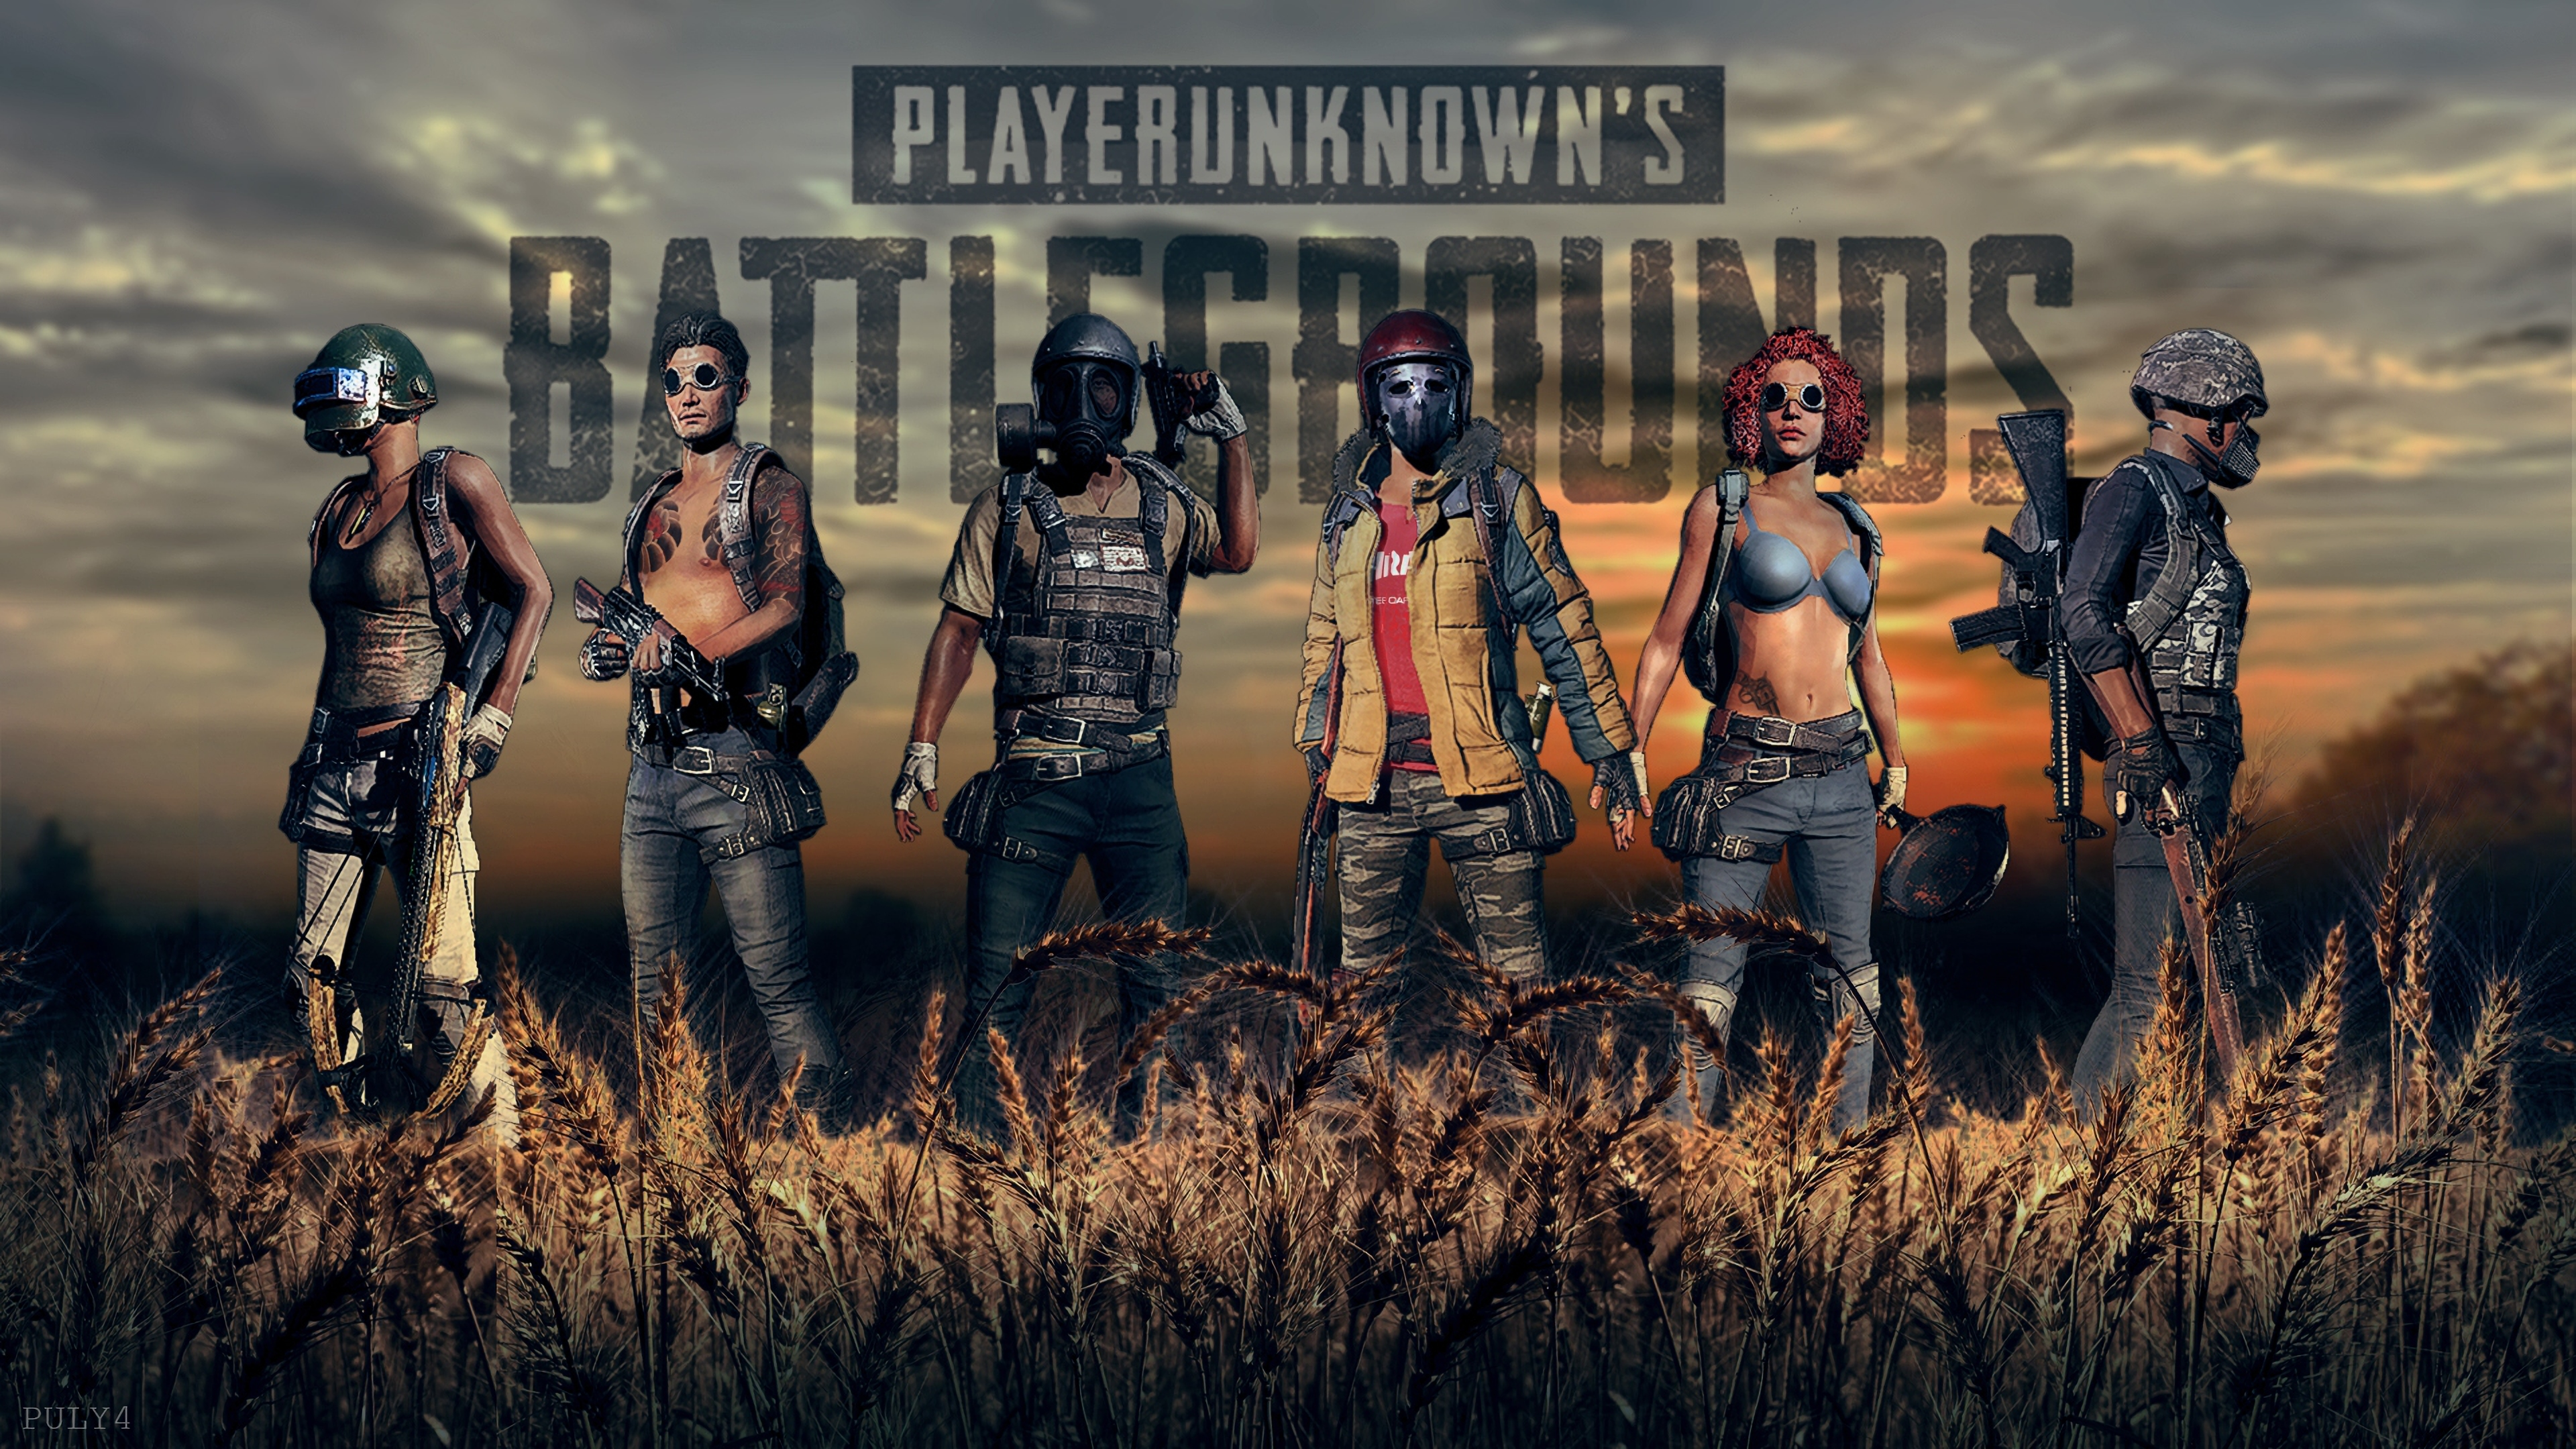 16 Luxury Pubg Wallpaper Iphone 6: PUBG Playerunknowns Battlegrounds Background 13